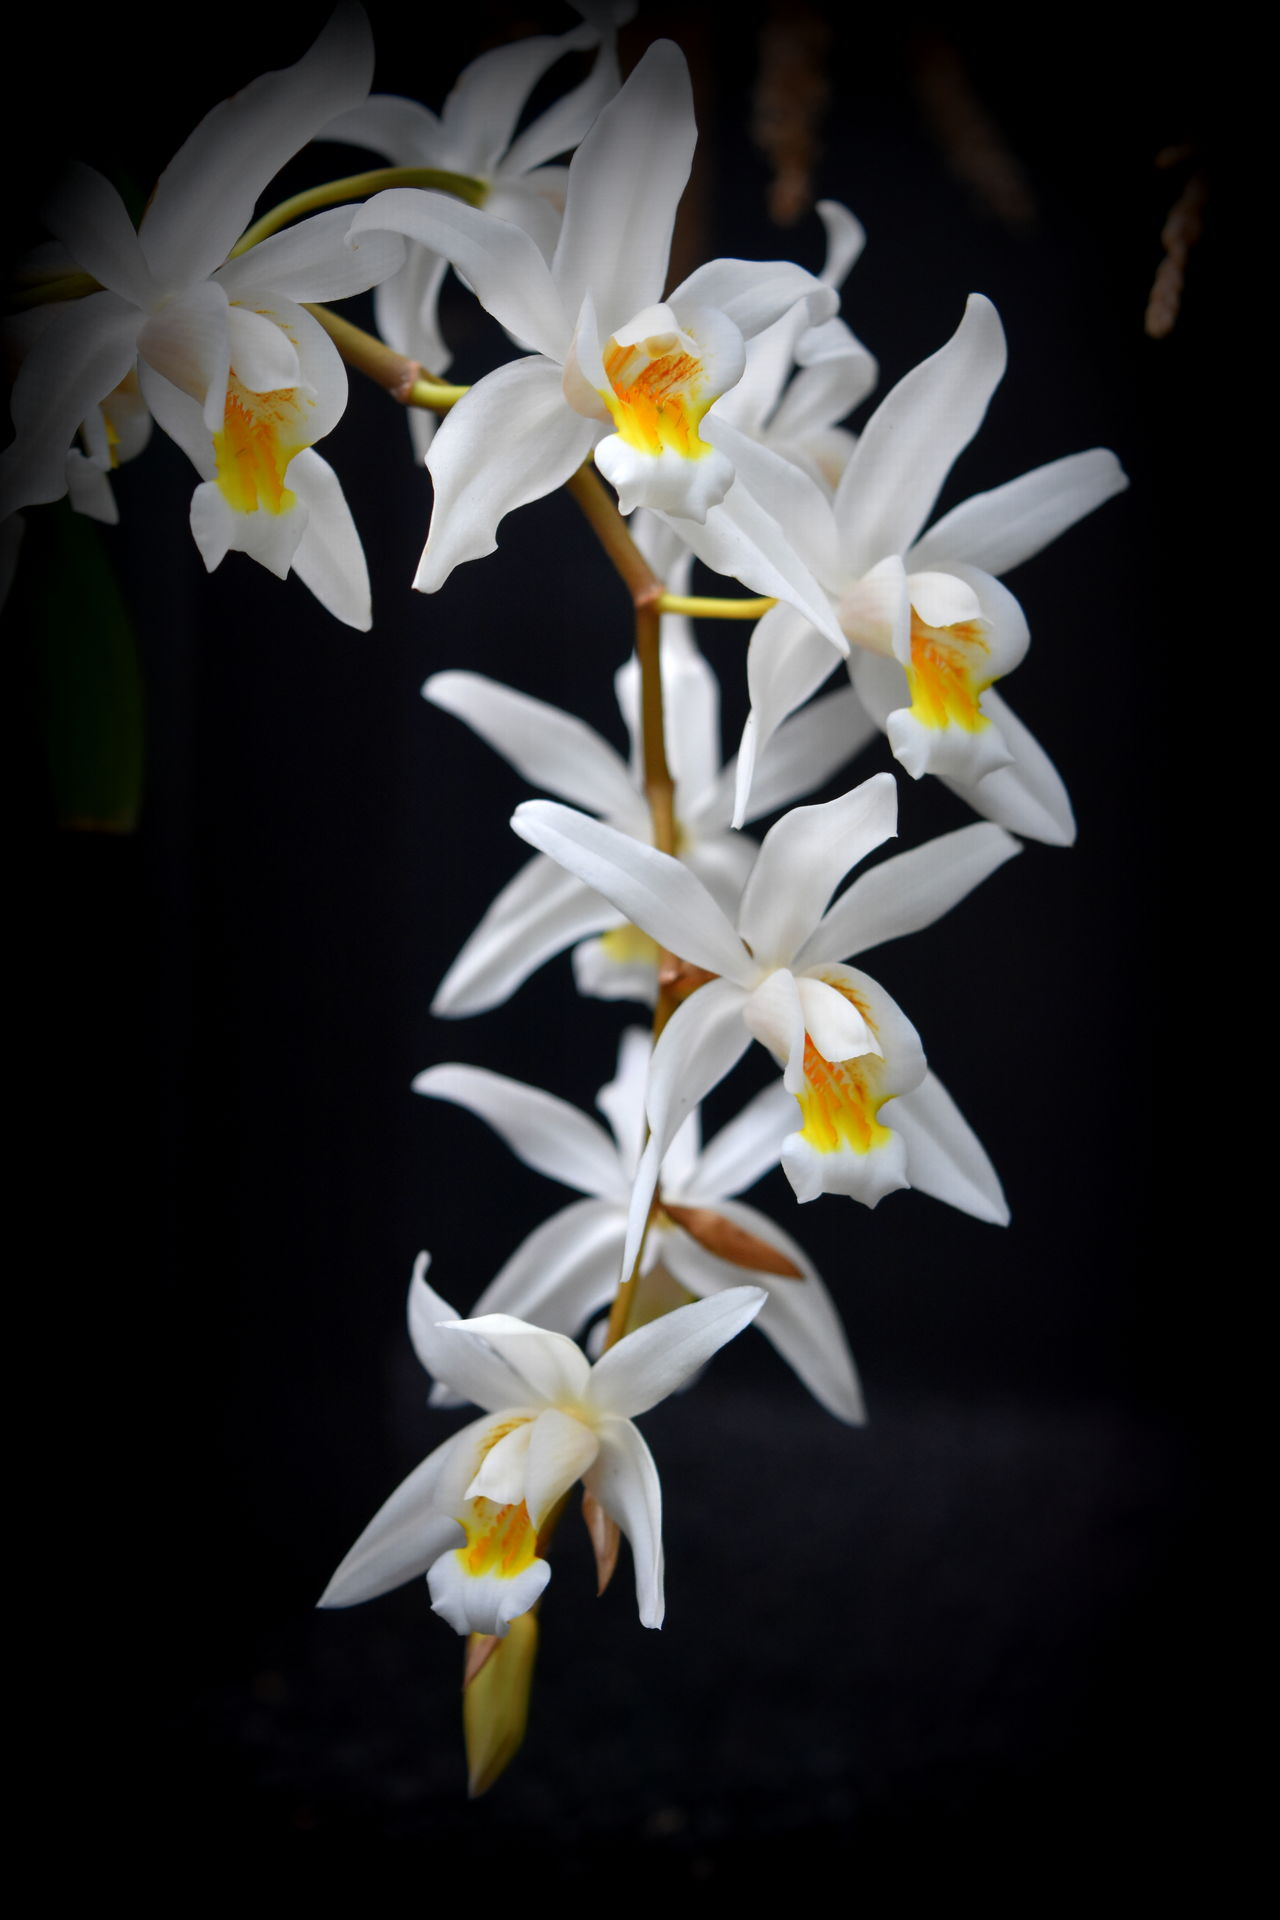 Beauty In Nature Black Background Close-up Flower Flower Head Fragility Freshness Growth Nature No People Orchid Orchid Blossoms Orchid Flower Orchids Orchids By Dvate Petal Plant White Color